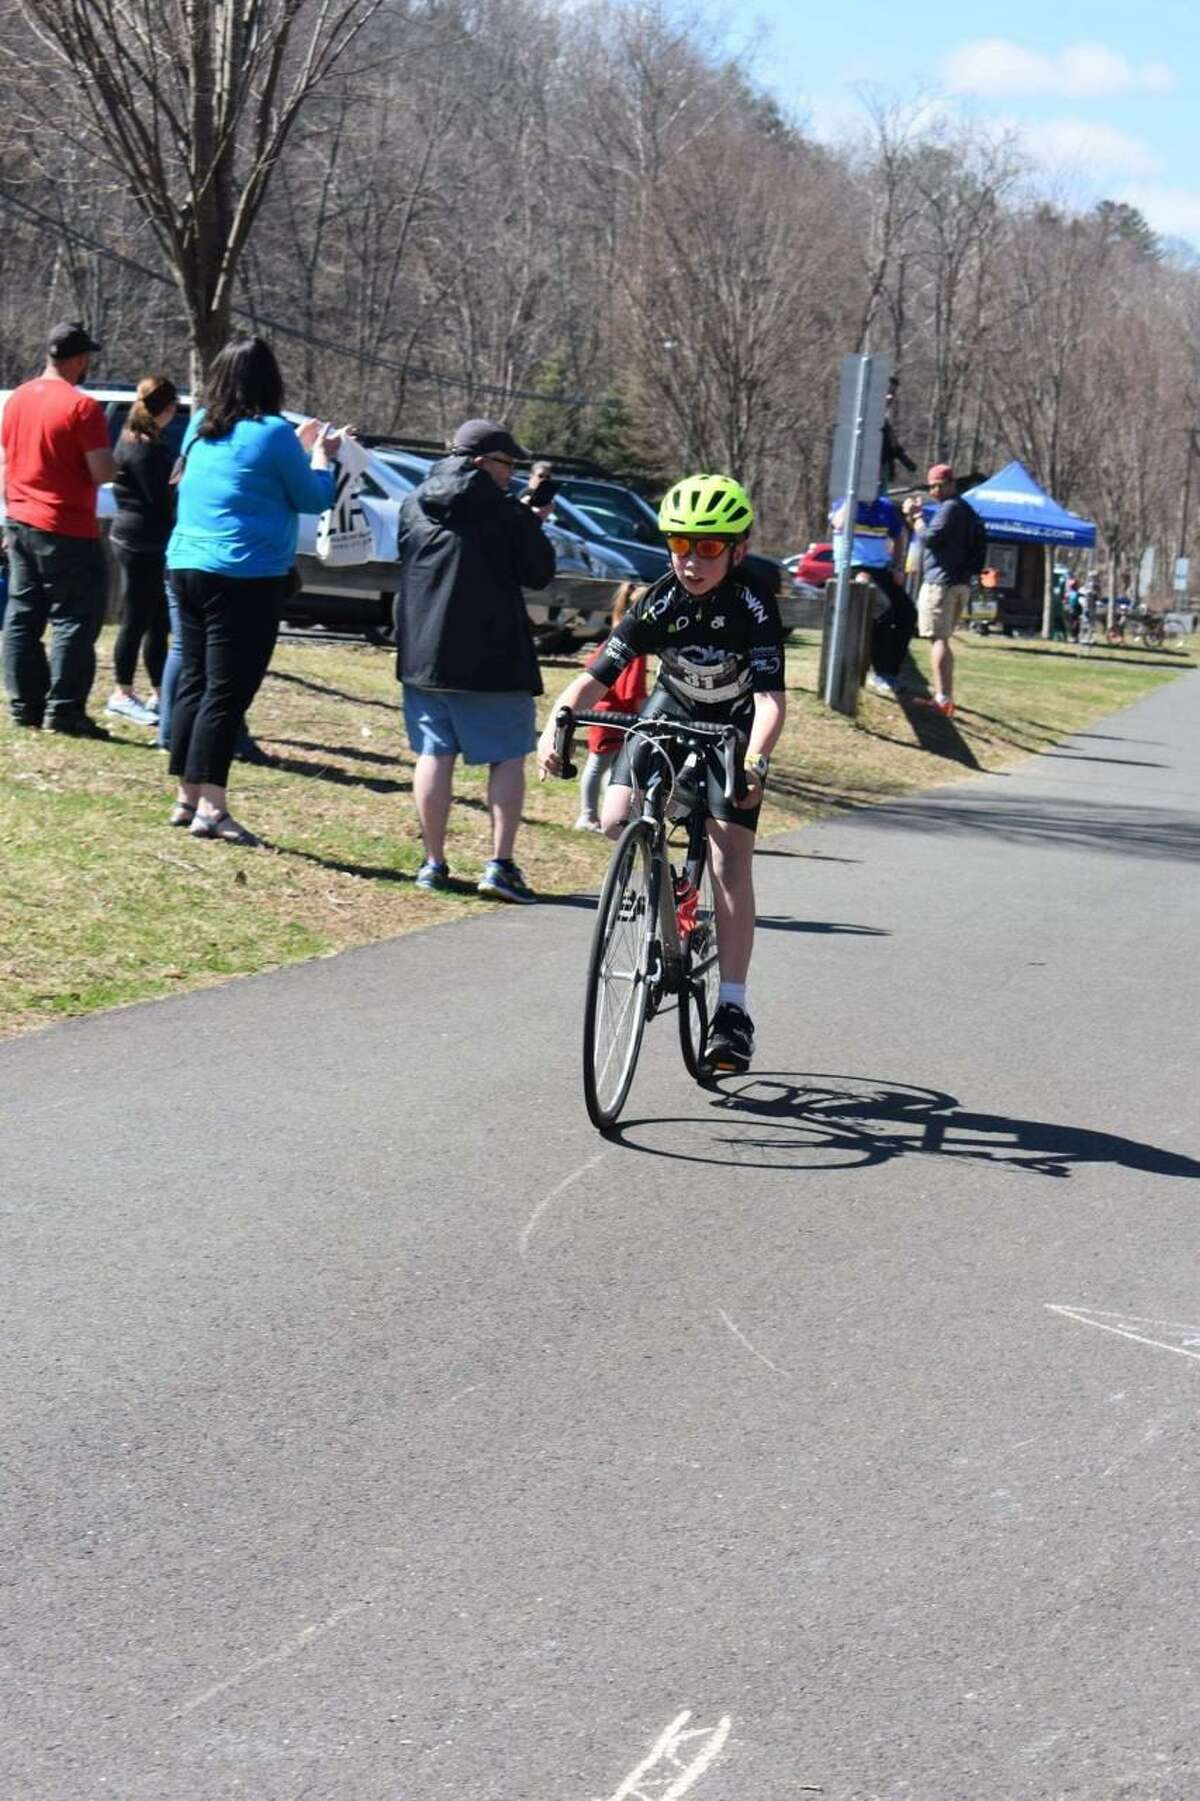 Colton is competing in a bike race.